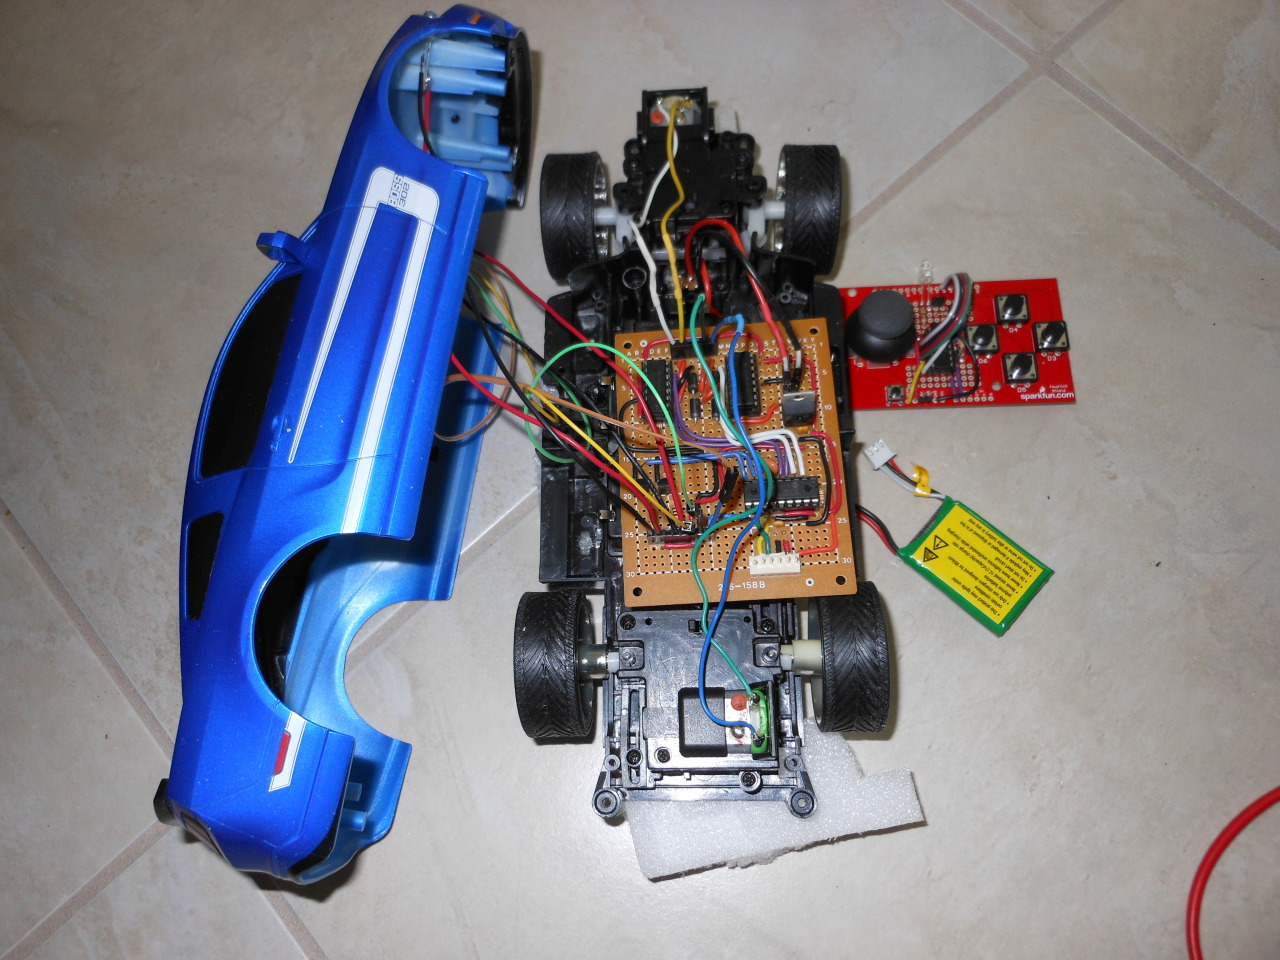 Sst28sf040 further Atmega16 Microcontroller also Small Camera 697320 furthermore Circuitssmps moreover Ir toy car dspic. on electronic flash circuit